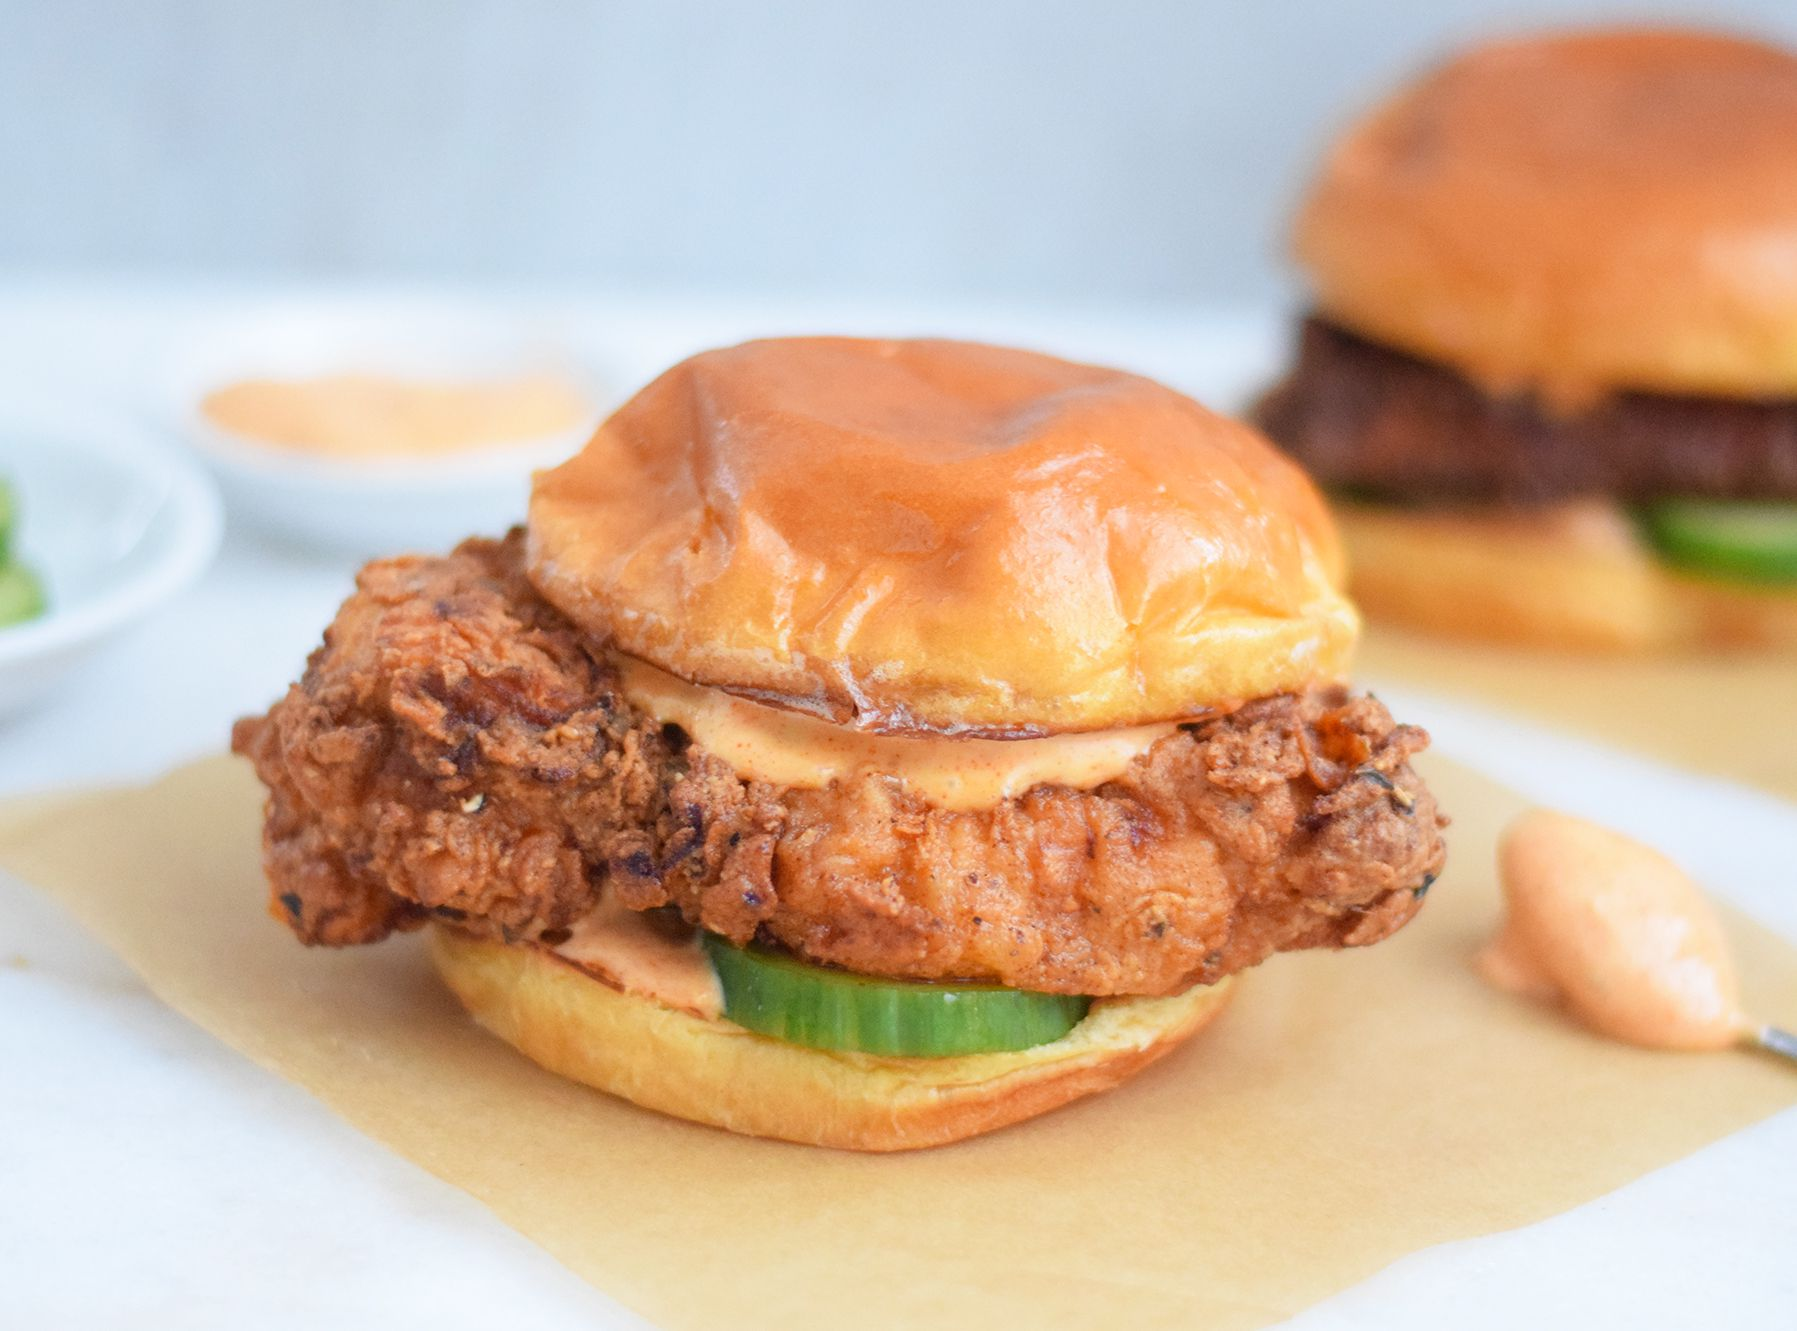 Our Copycat Popeye's Chicken Sandwich Might Be Better Than the Real Thing